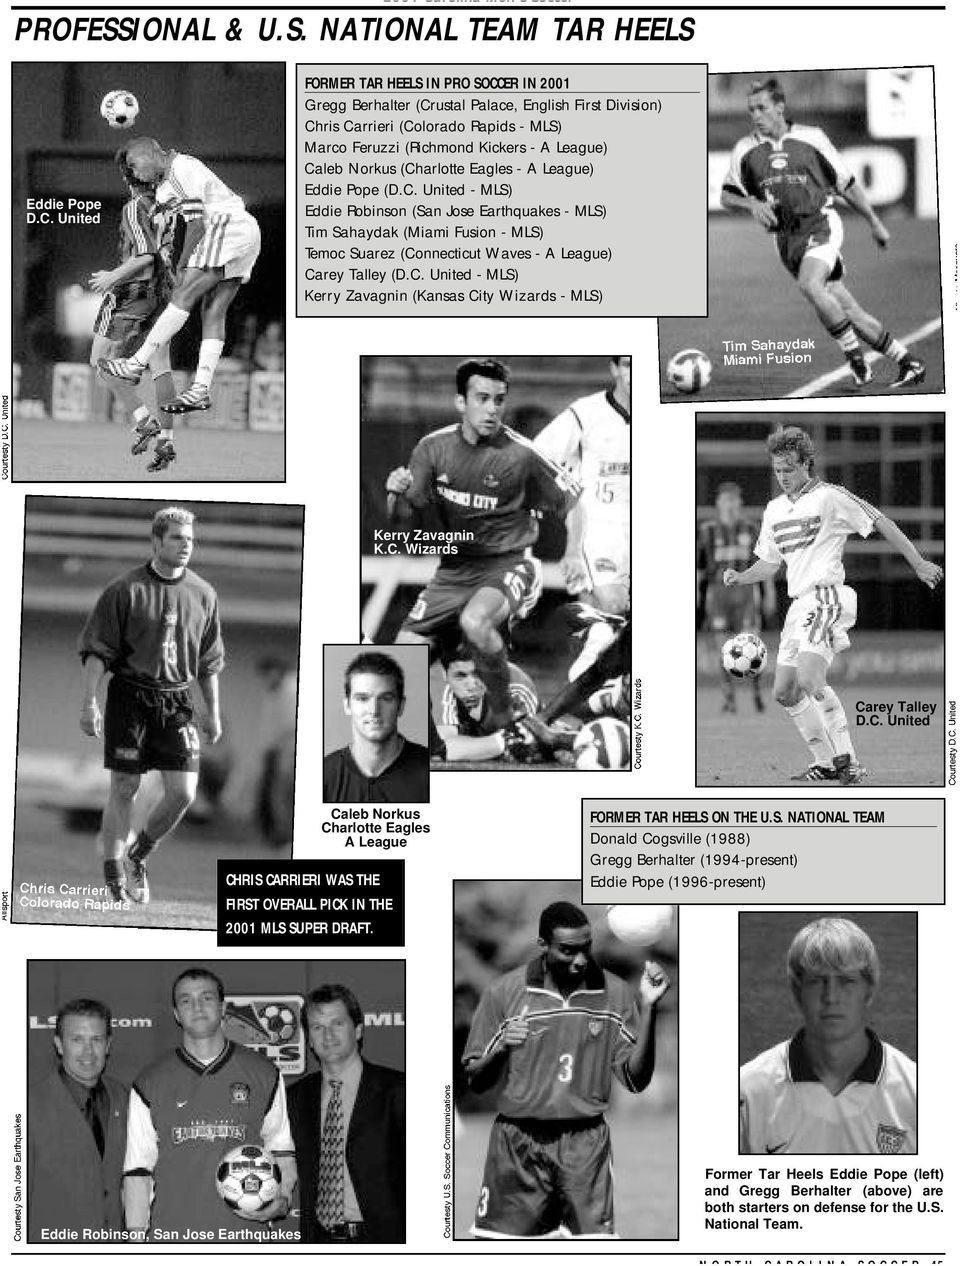 (Charlotte Eagles - A League) Eddie Pope (D.C. United - MLS) Eddie Robinson (San Jose Earthquakes - MLS) Tim Sahaydak (Miami Fusion - MLS) Temoc Suarez (Connecticut Waves - A League) Carey Talley (D.